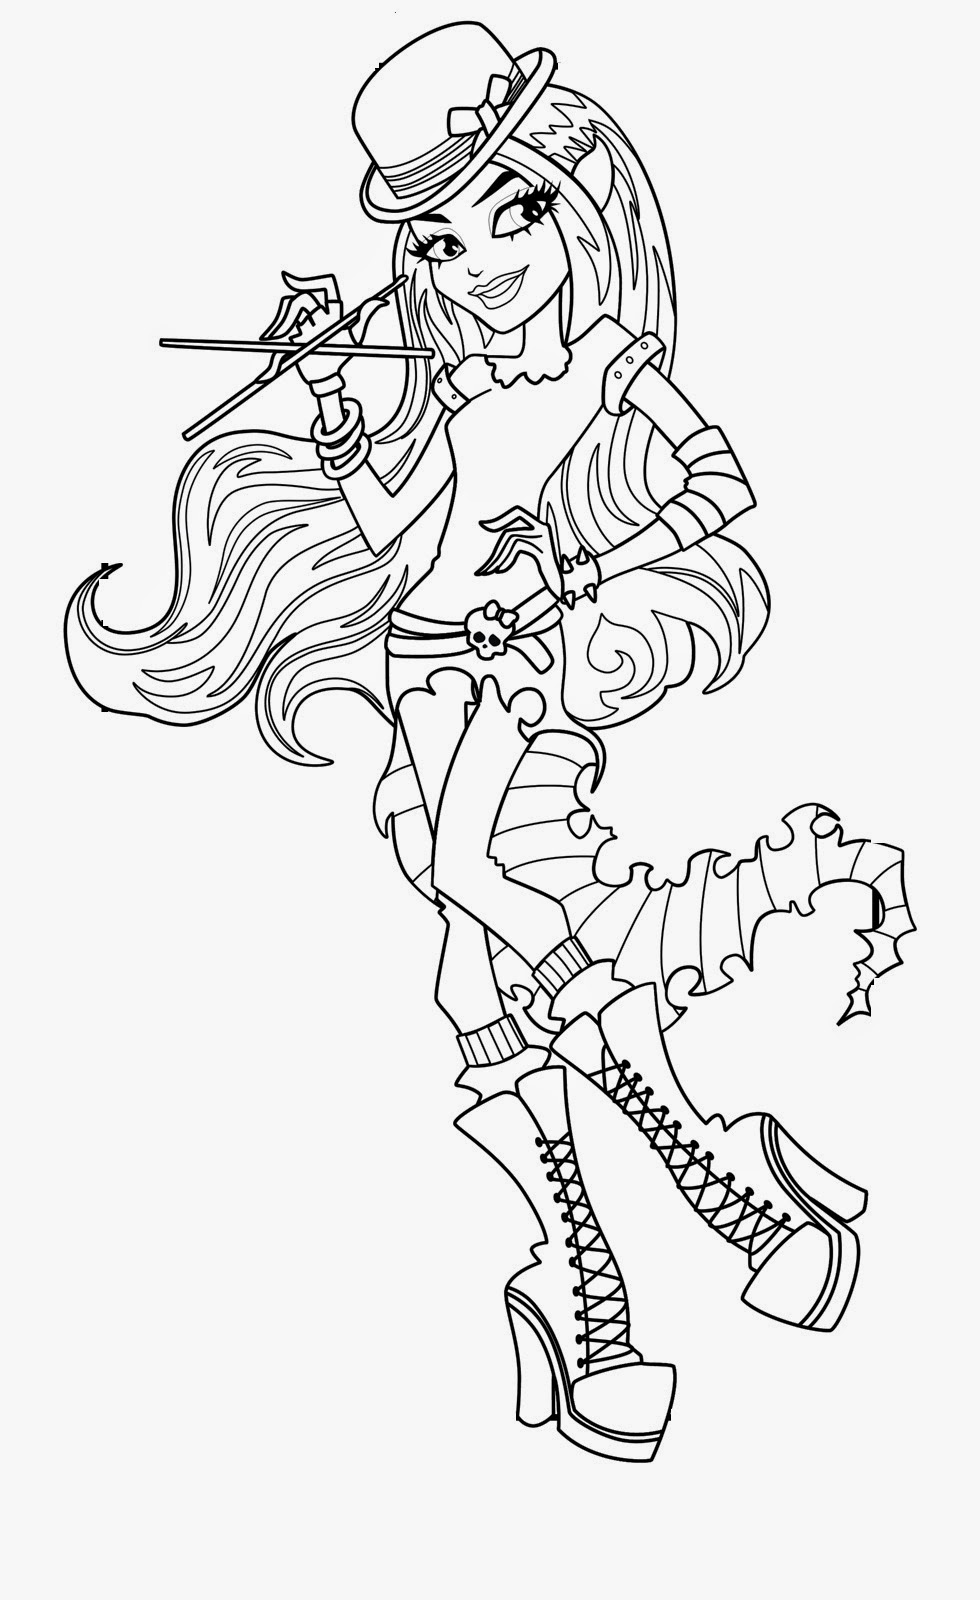 monster high free coloring pages to print coloring pages monster high coloring pages free and printable free print to pages coloring high monster